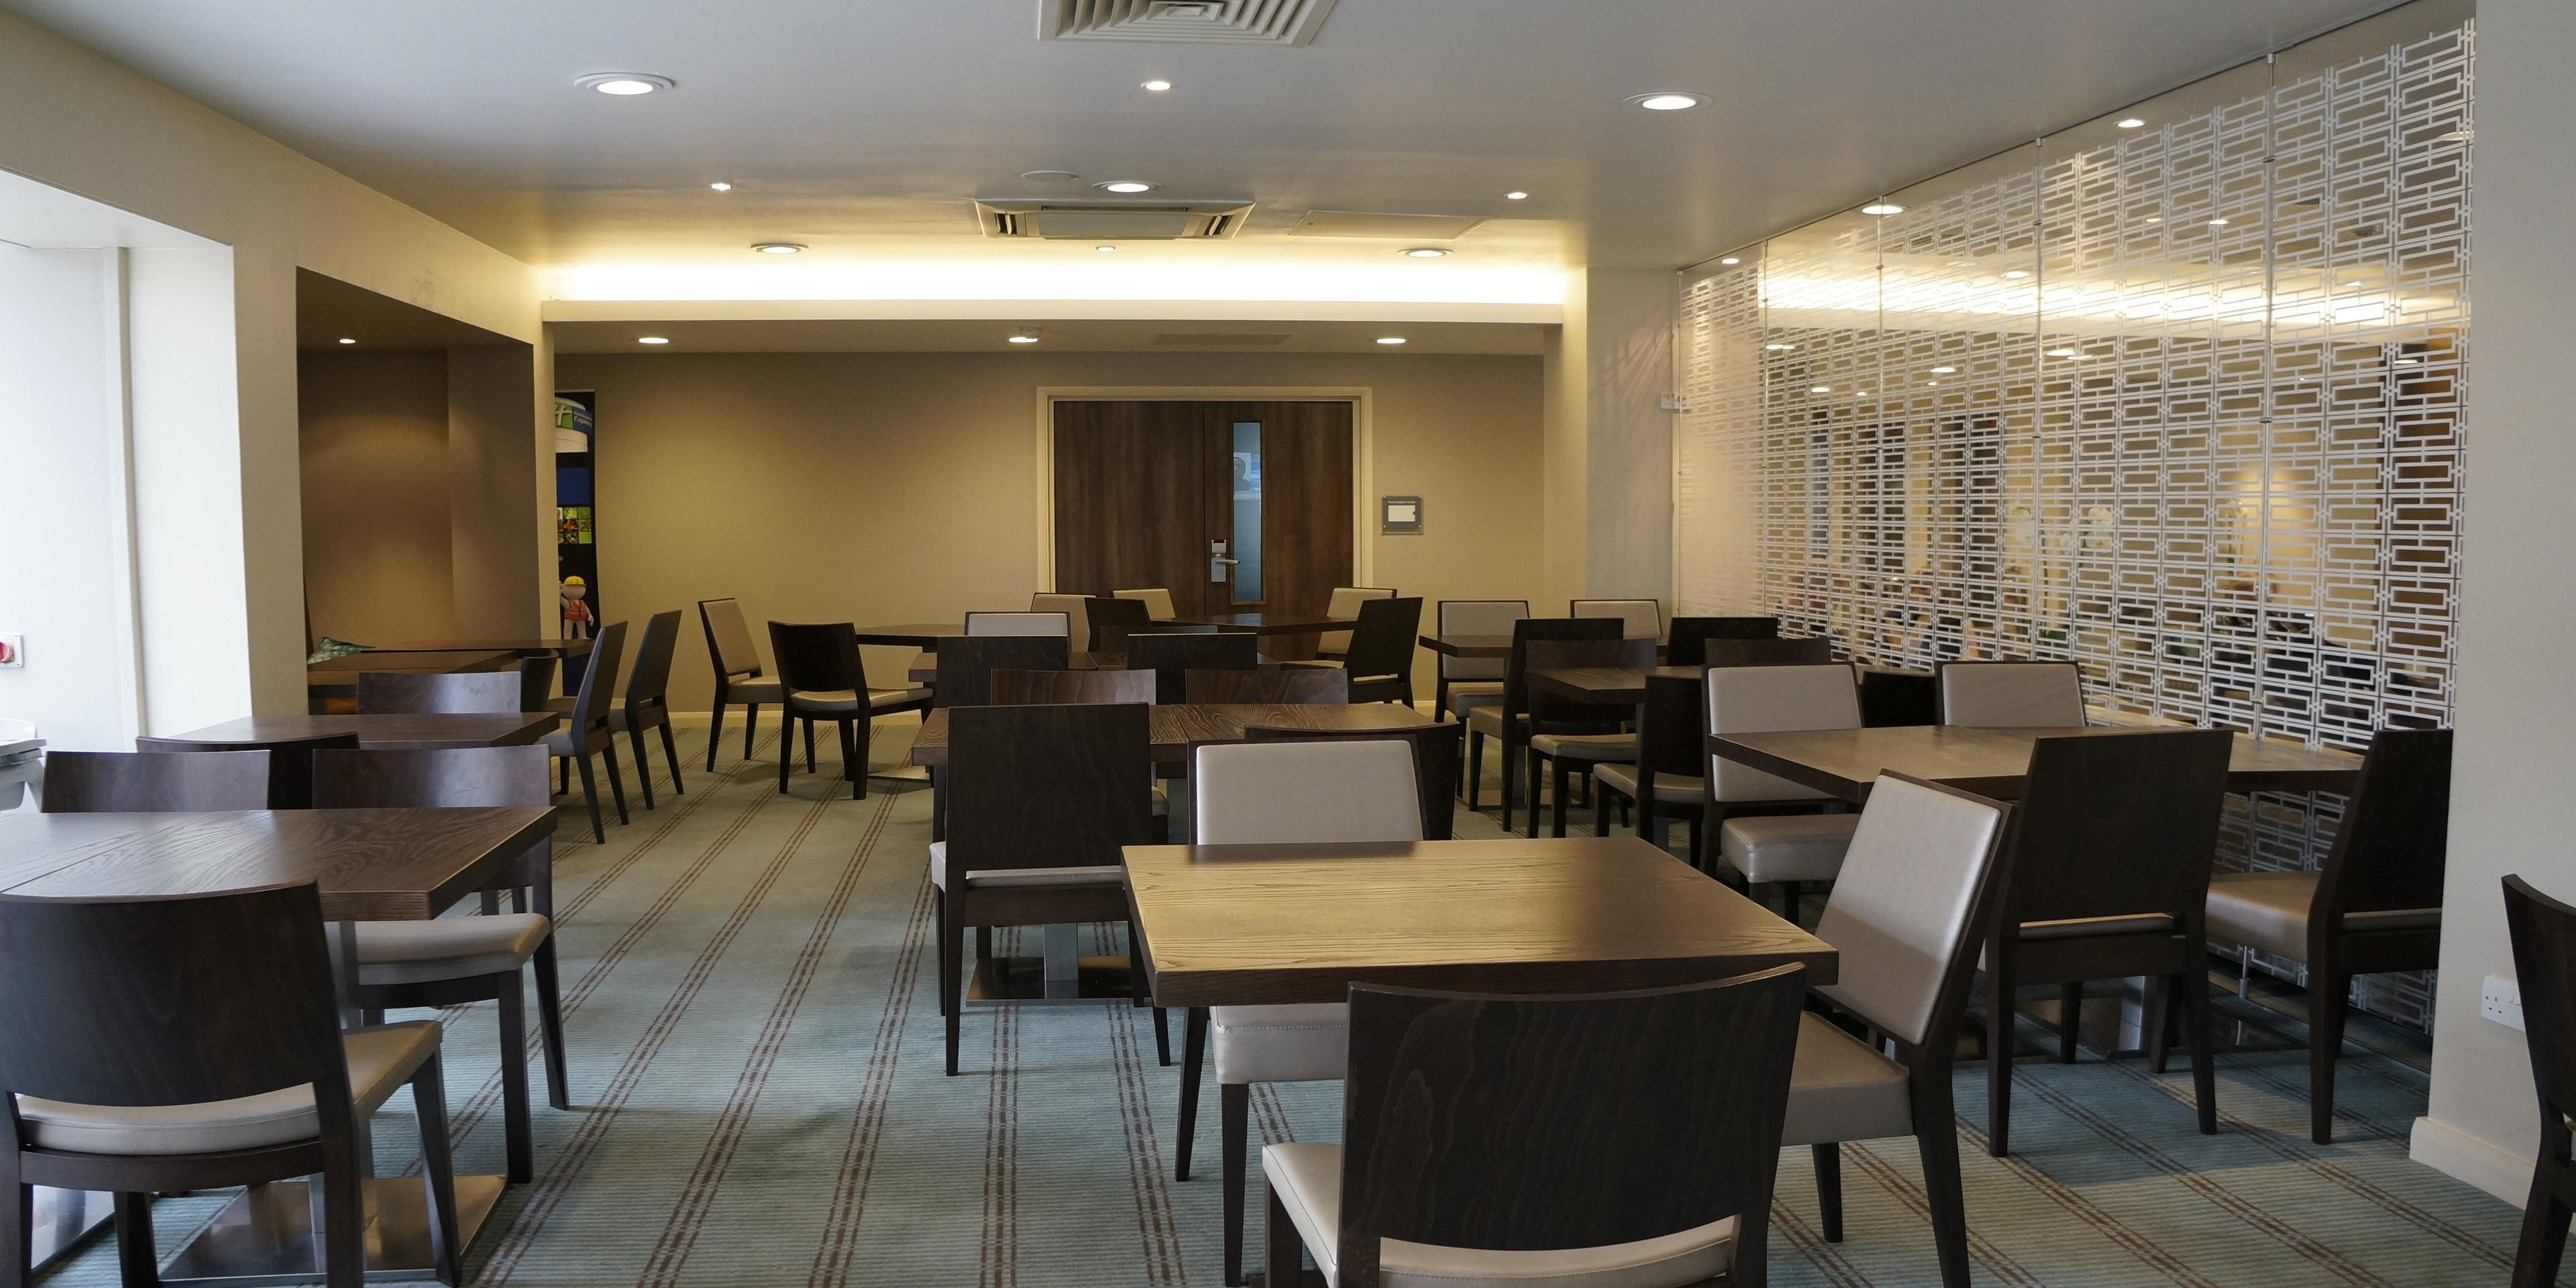 Holiday Inn Express Hotel London - Earl's Court